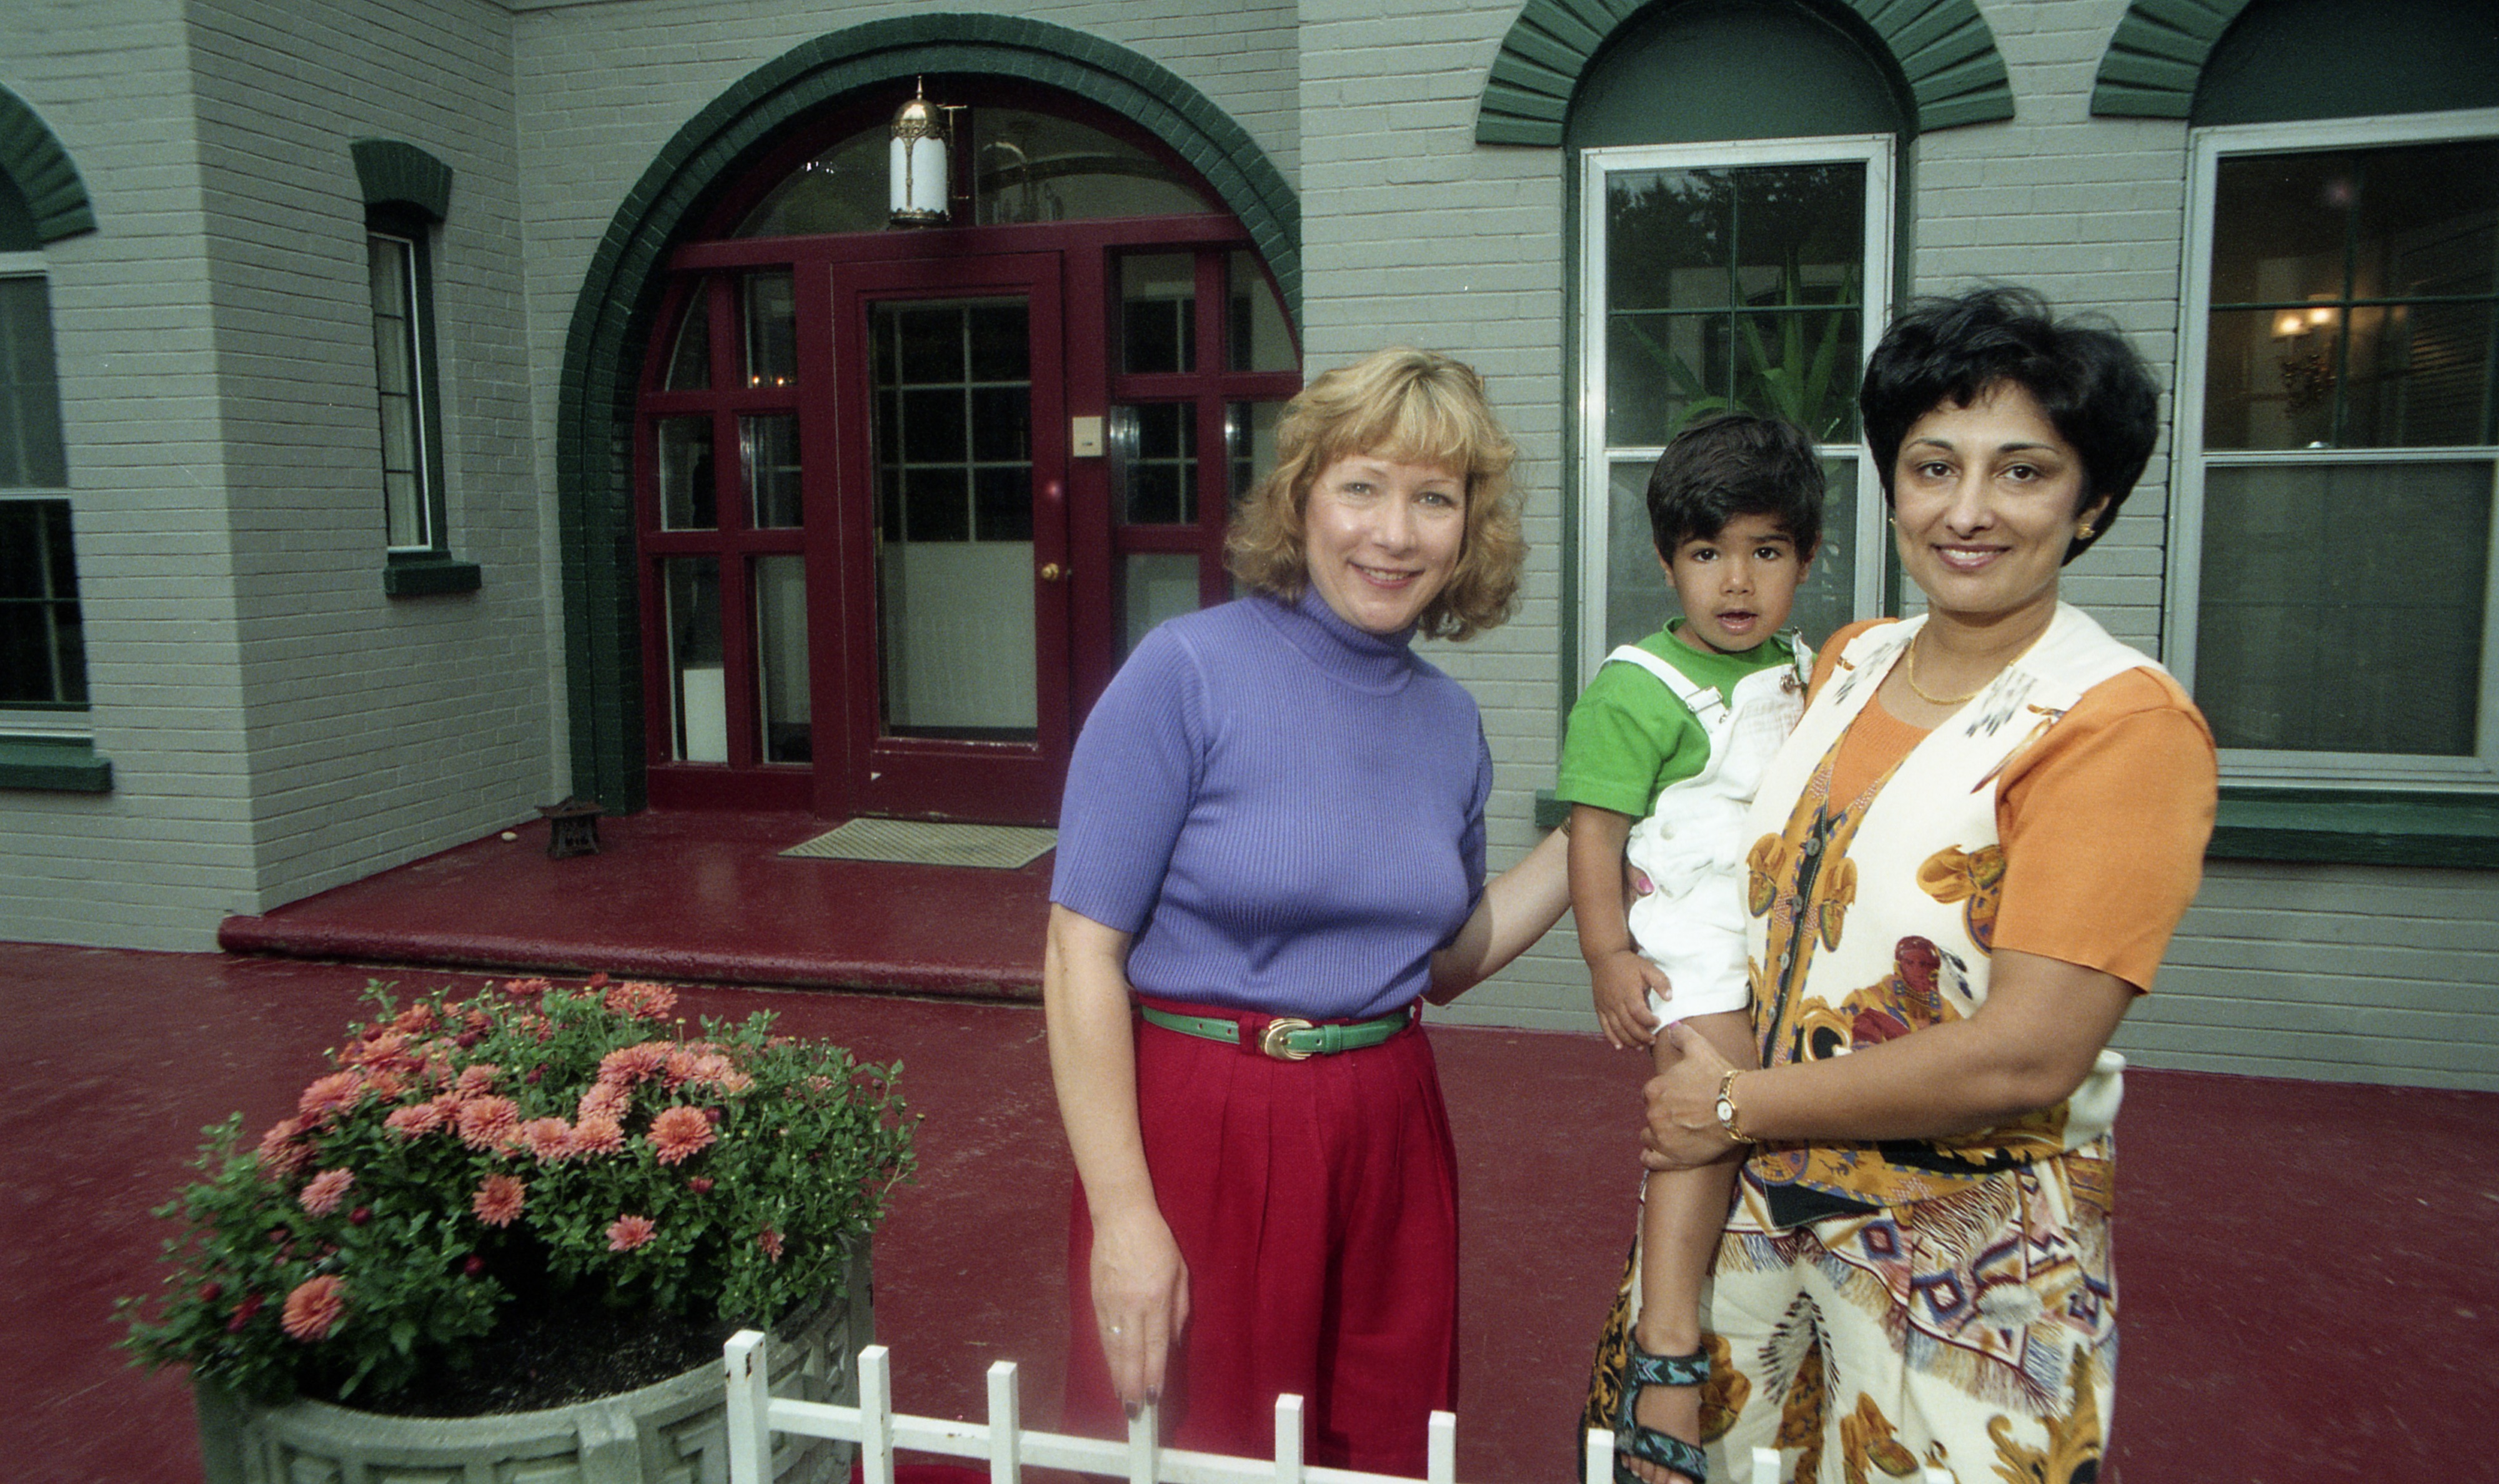 Bennett House, Exterior Front Entrance with Karnani Family, September 1997 image